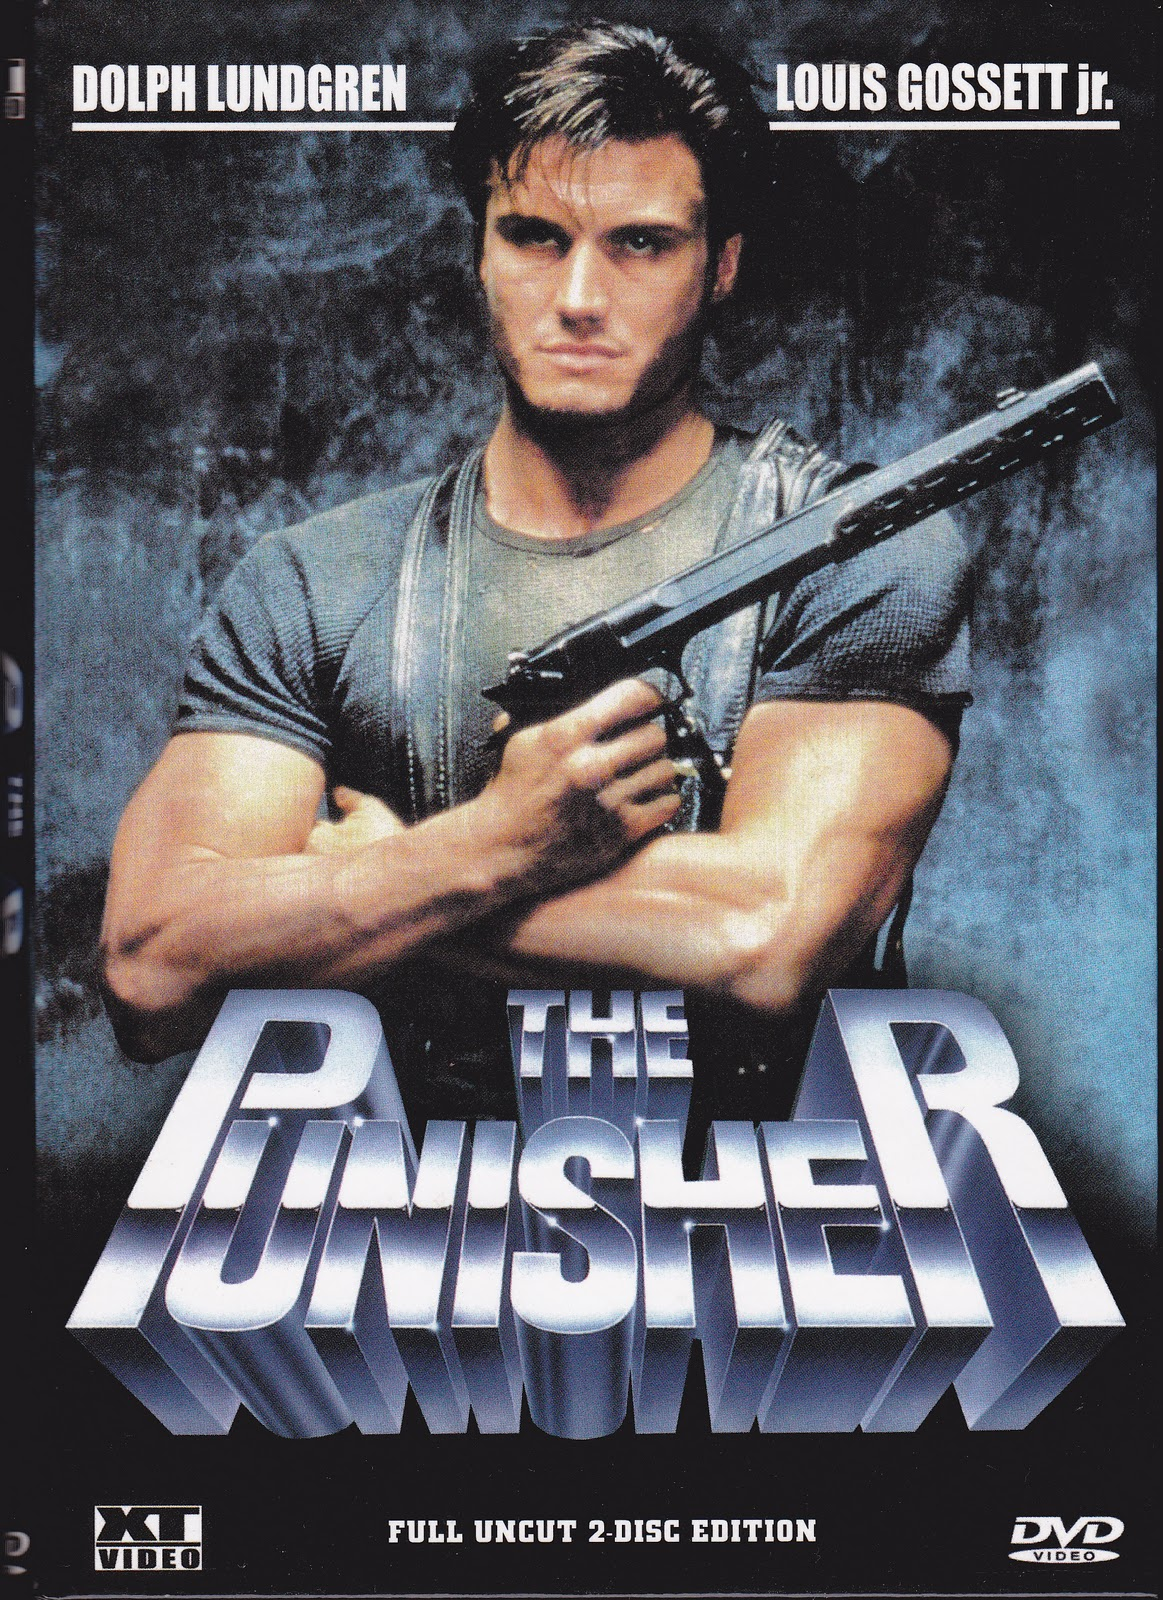 The Punisher Movie 1989 80 s movie with the most